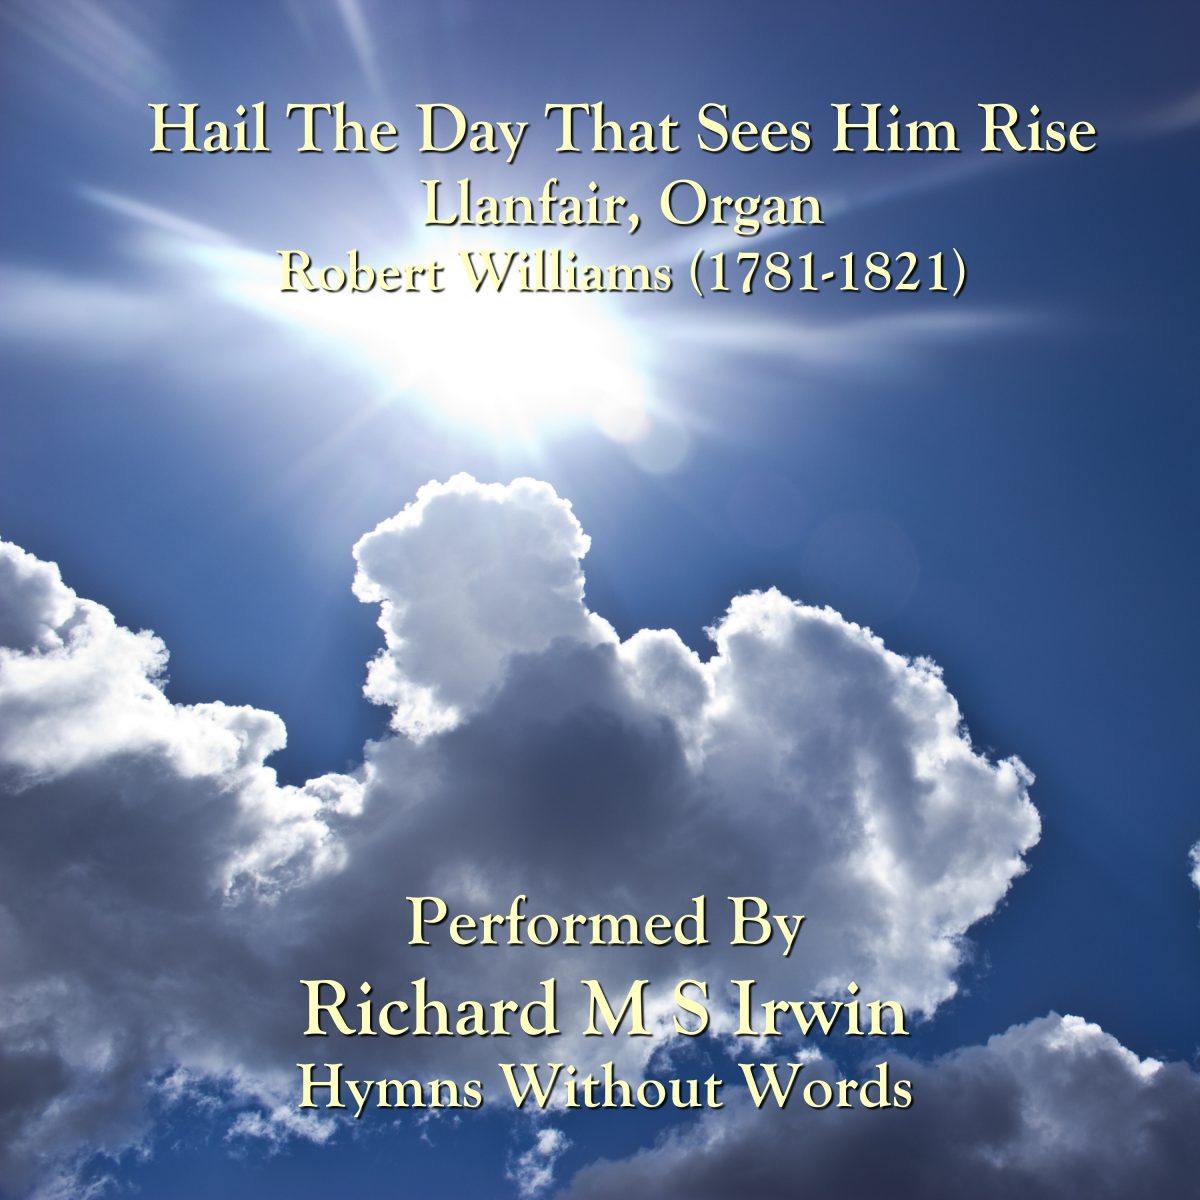 Hail The Day That Sees Him Rise (Llanfair, Organ, 5 Verses)